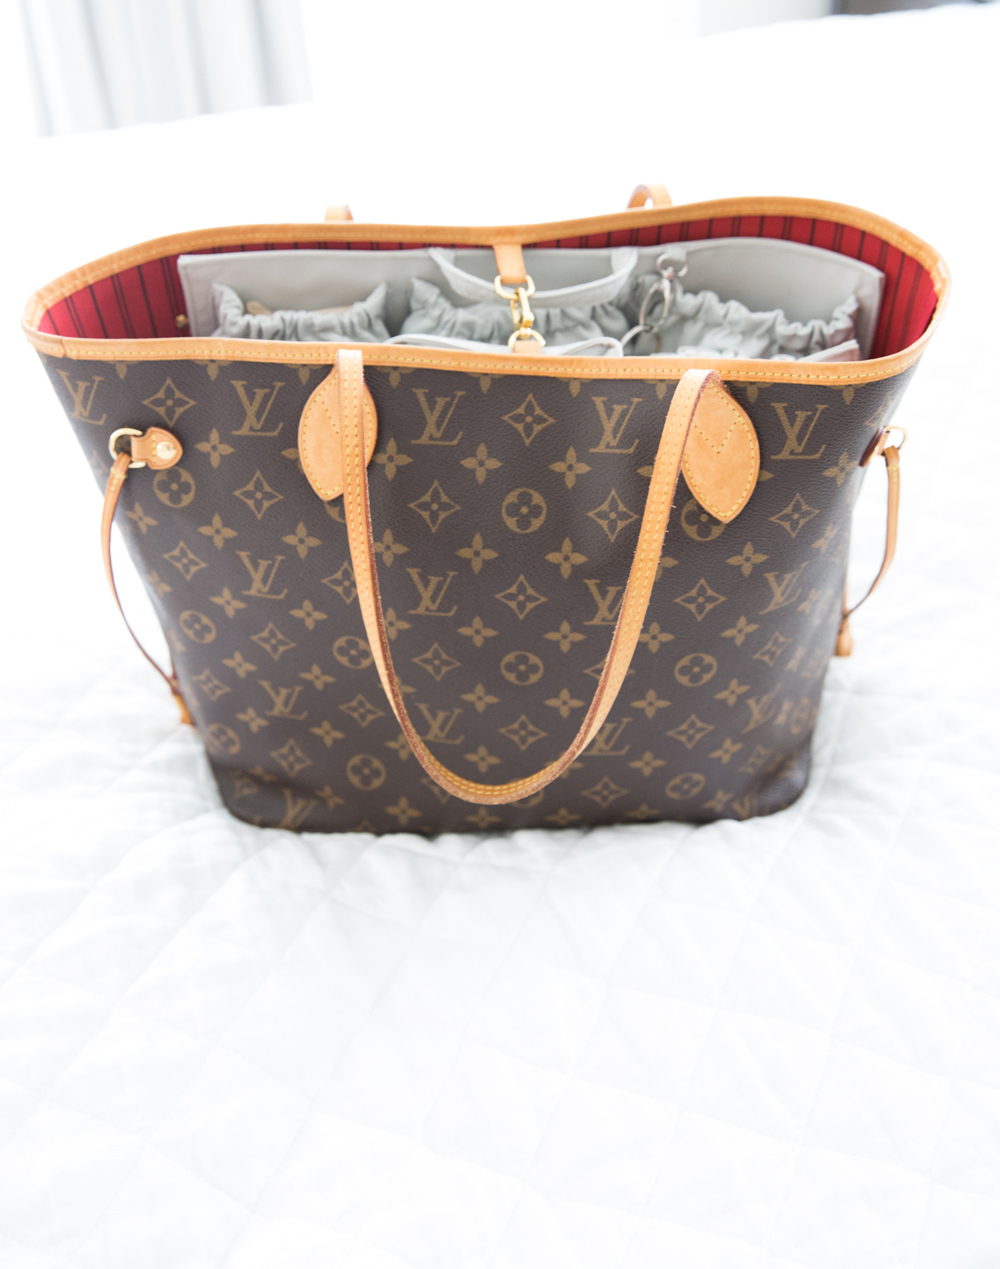 258190850eb7 Below are some pictures of the fit in the Neverfull MM. It s definitely  much tighter